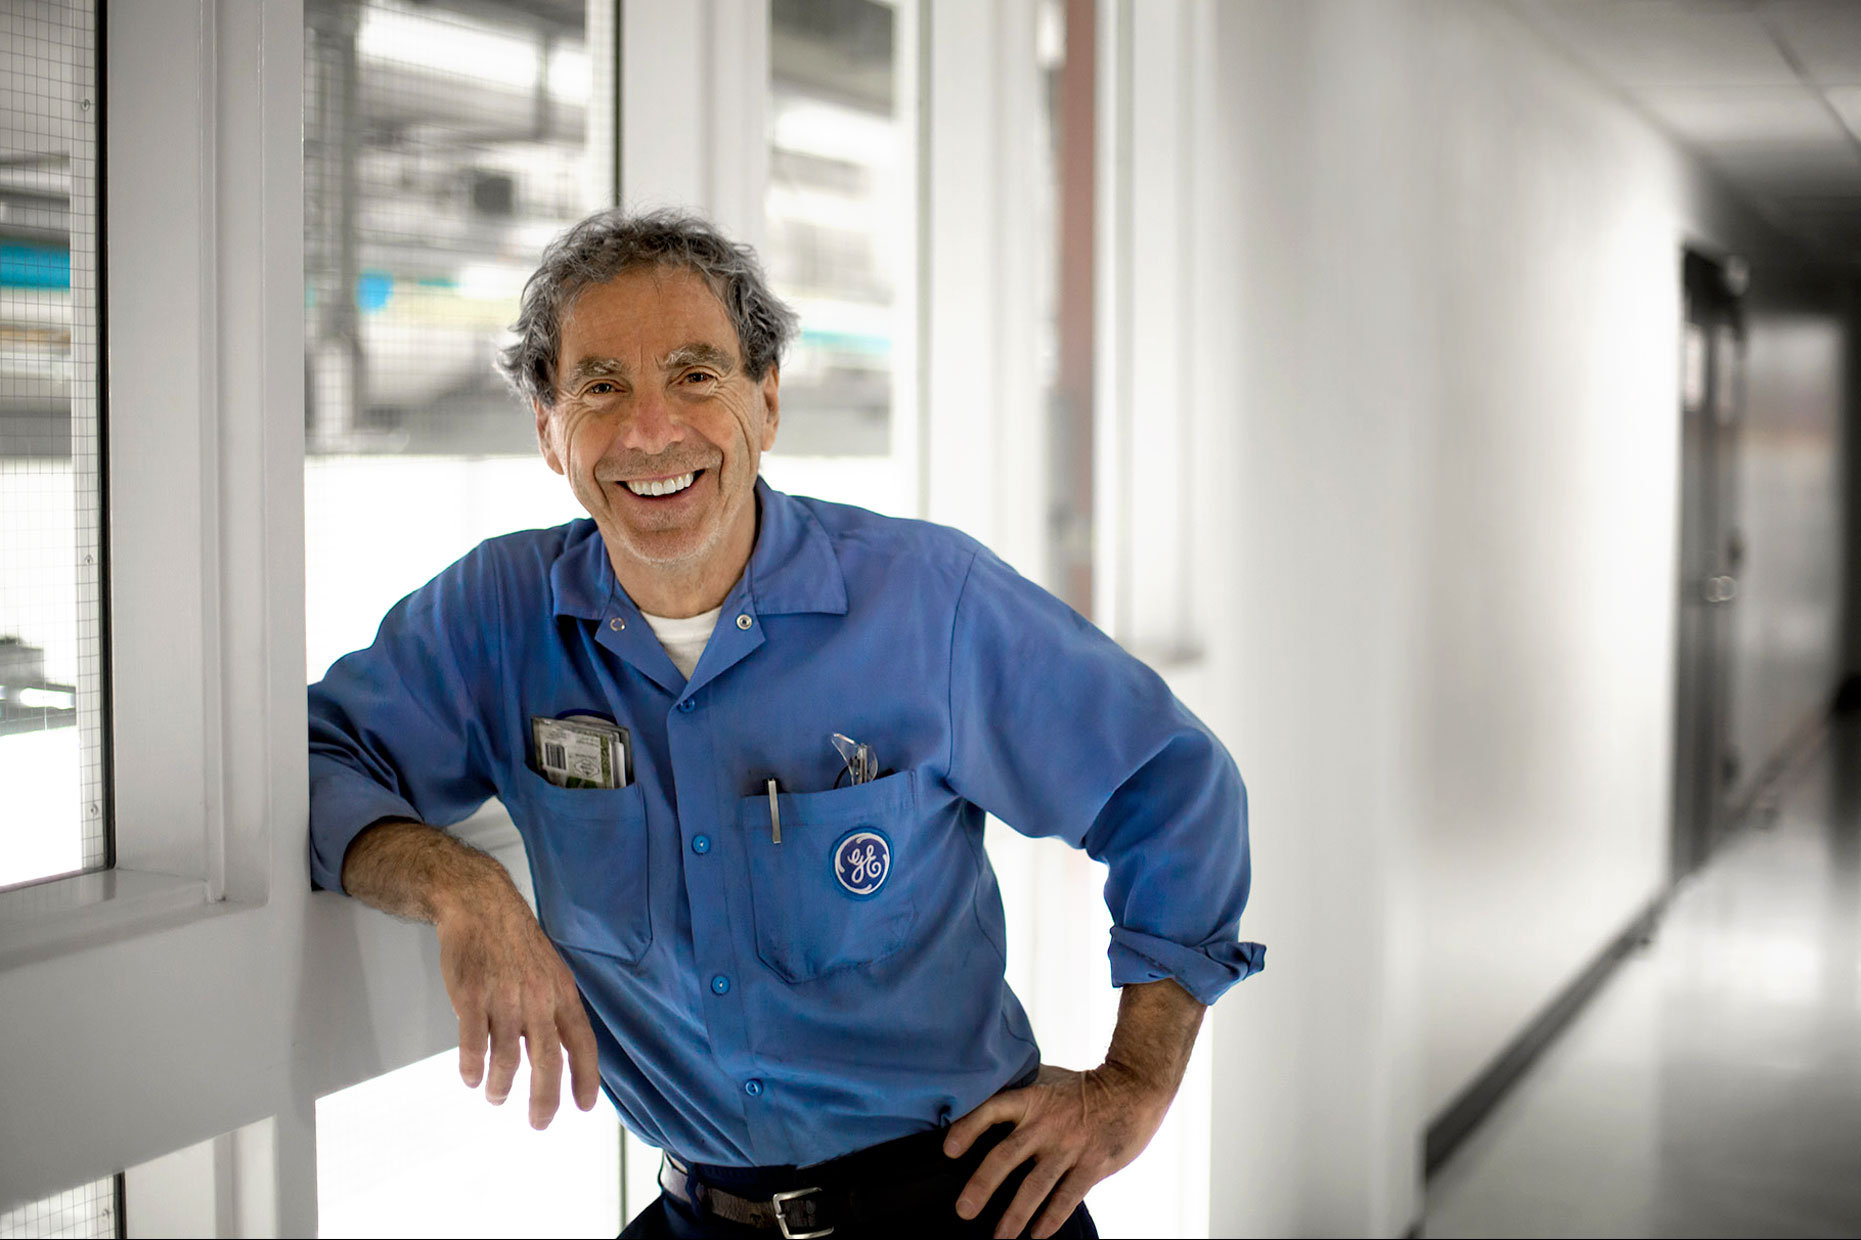 Smiling GE Technician environmental portrait | Scott Gable industrial photographer